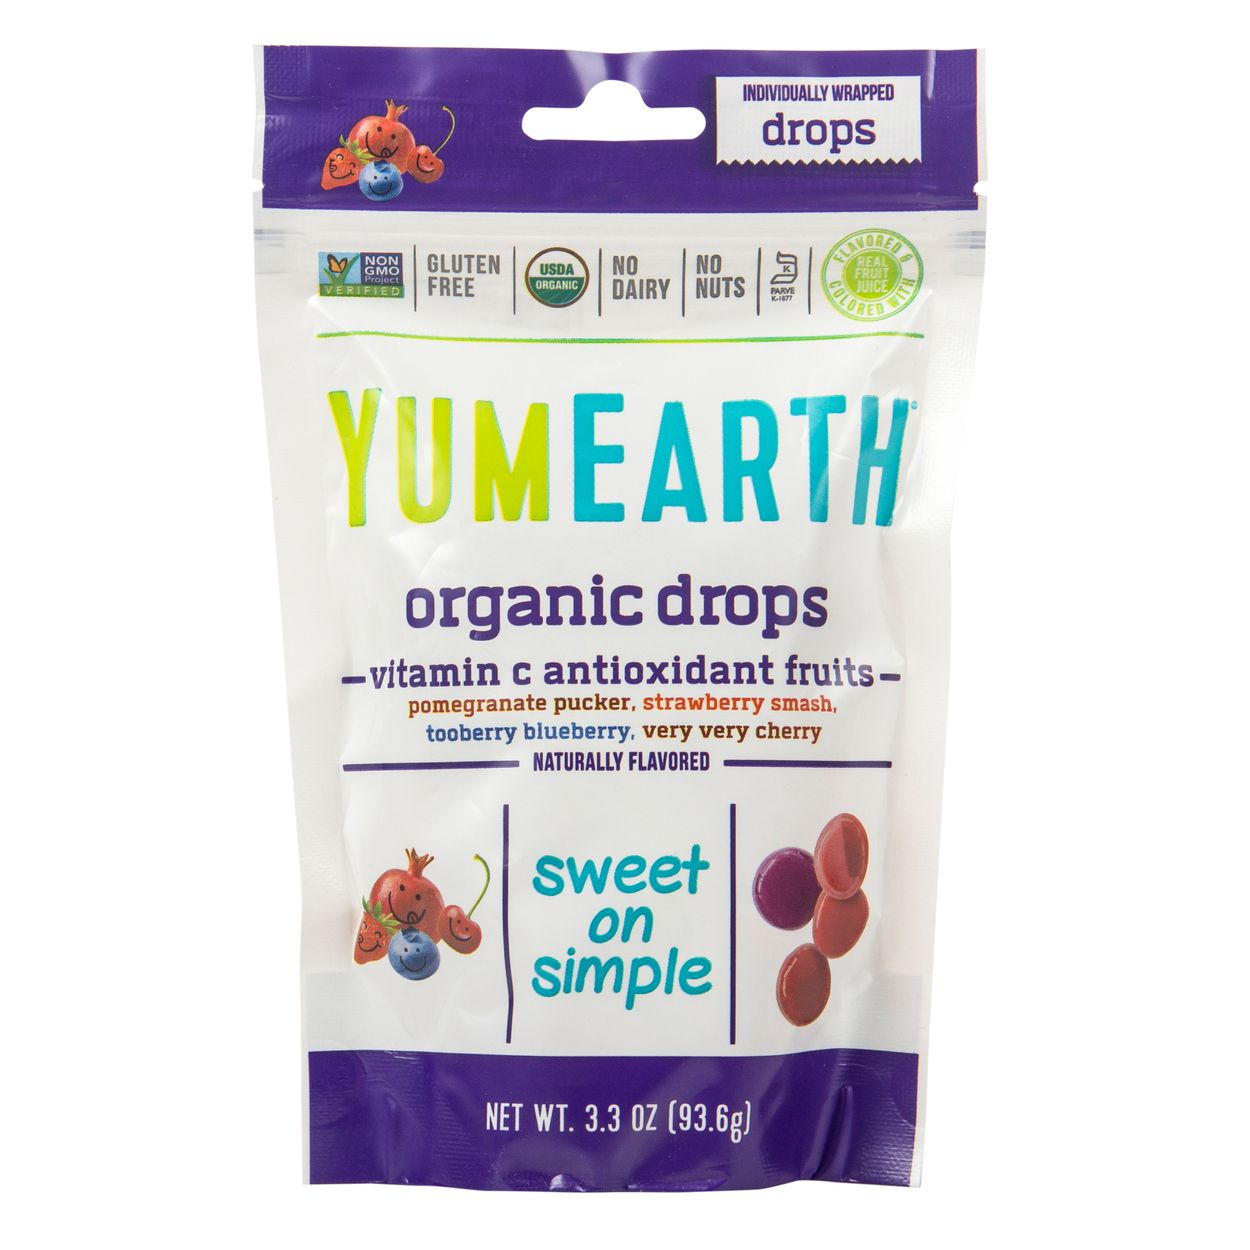 Yum Earth Vitamin C Antioxidant Drops